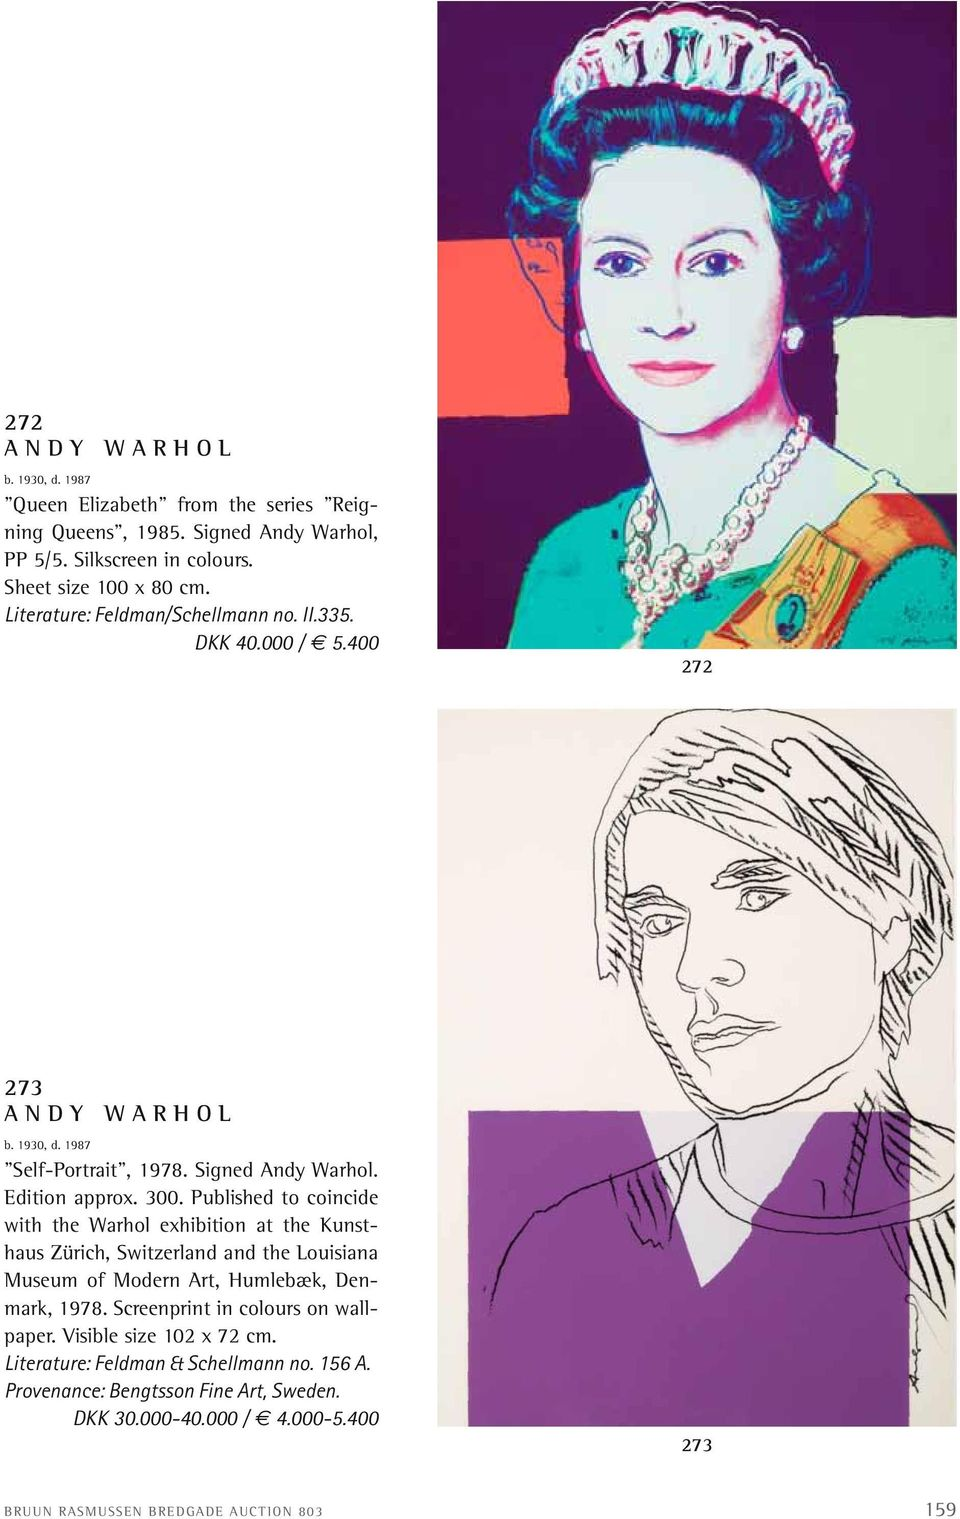 Published to coincide with the Warhol exhibition at the Kunsthaus Zürich, Switzerland and the Louisiana Museum of Modern Art, Humlebæk, Denmark, 1978.